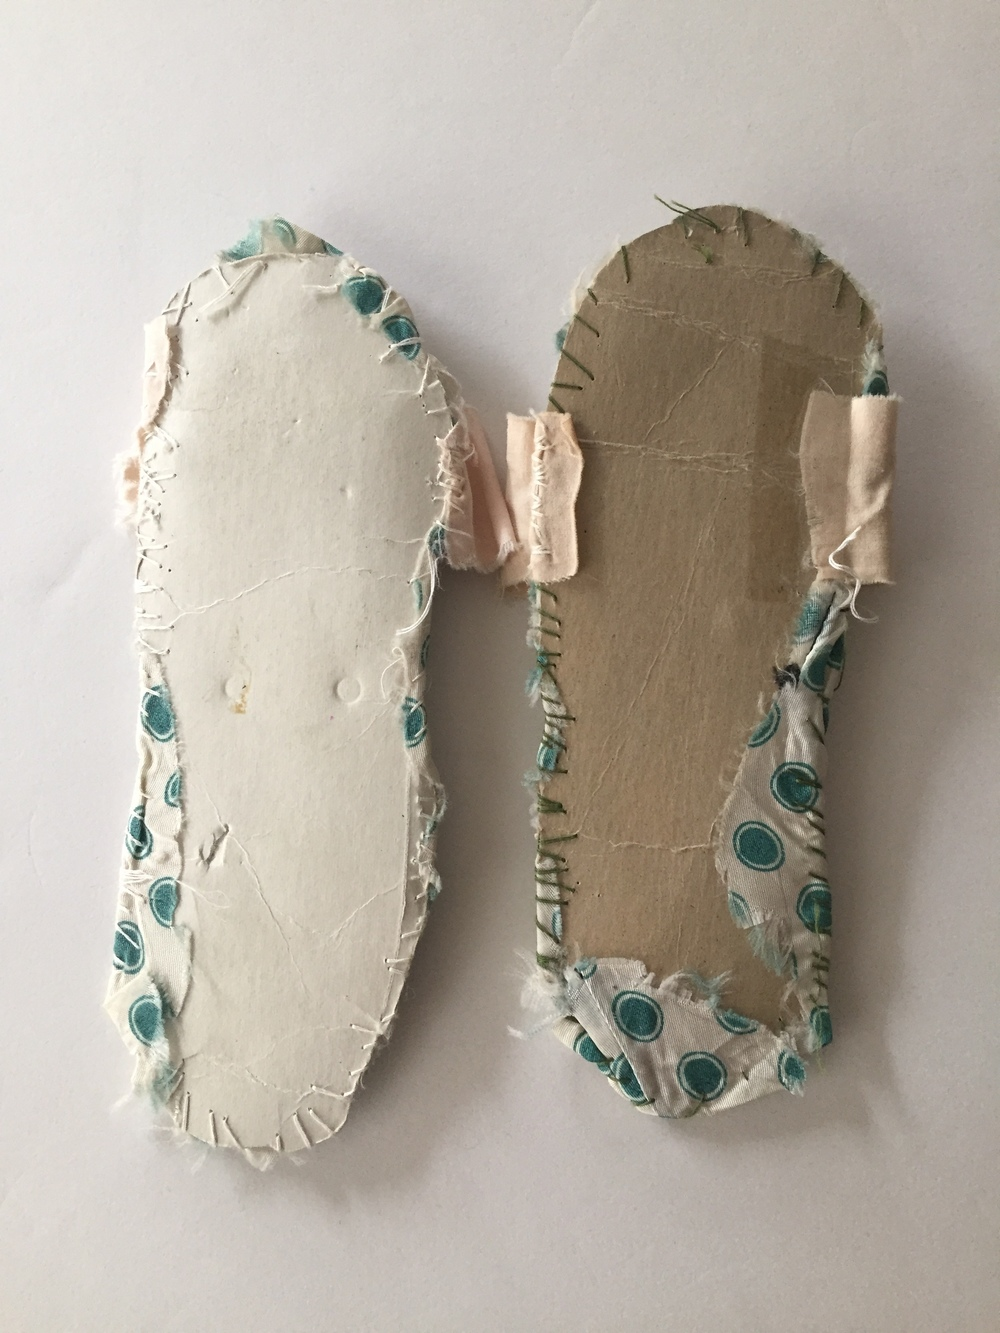 Childhood handmade slippers via Steller Handcrafted Goods blog